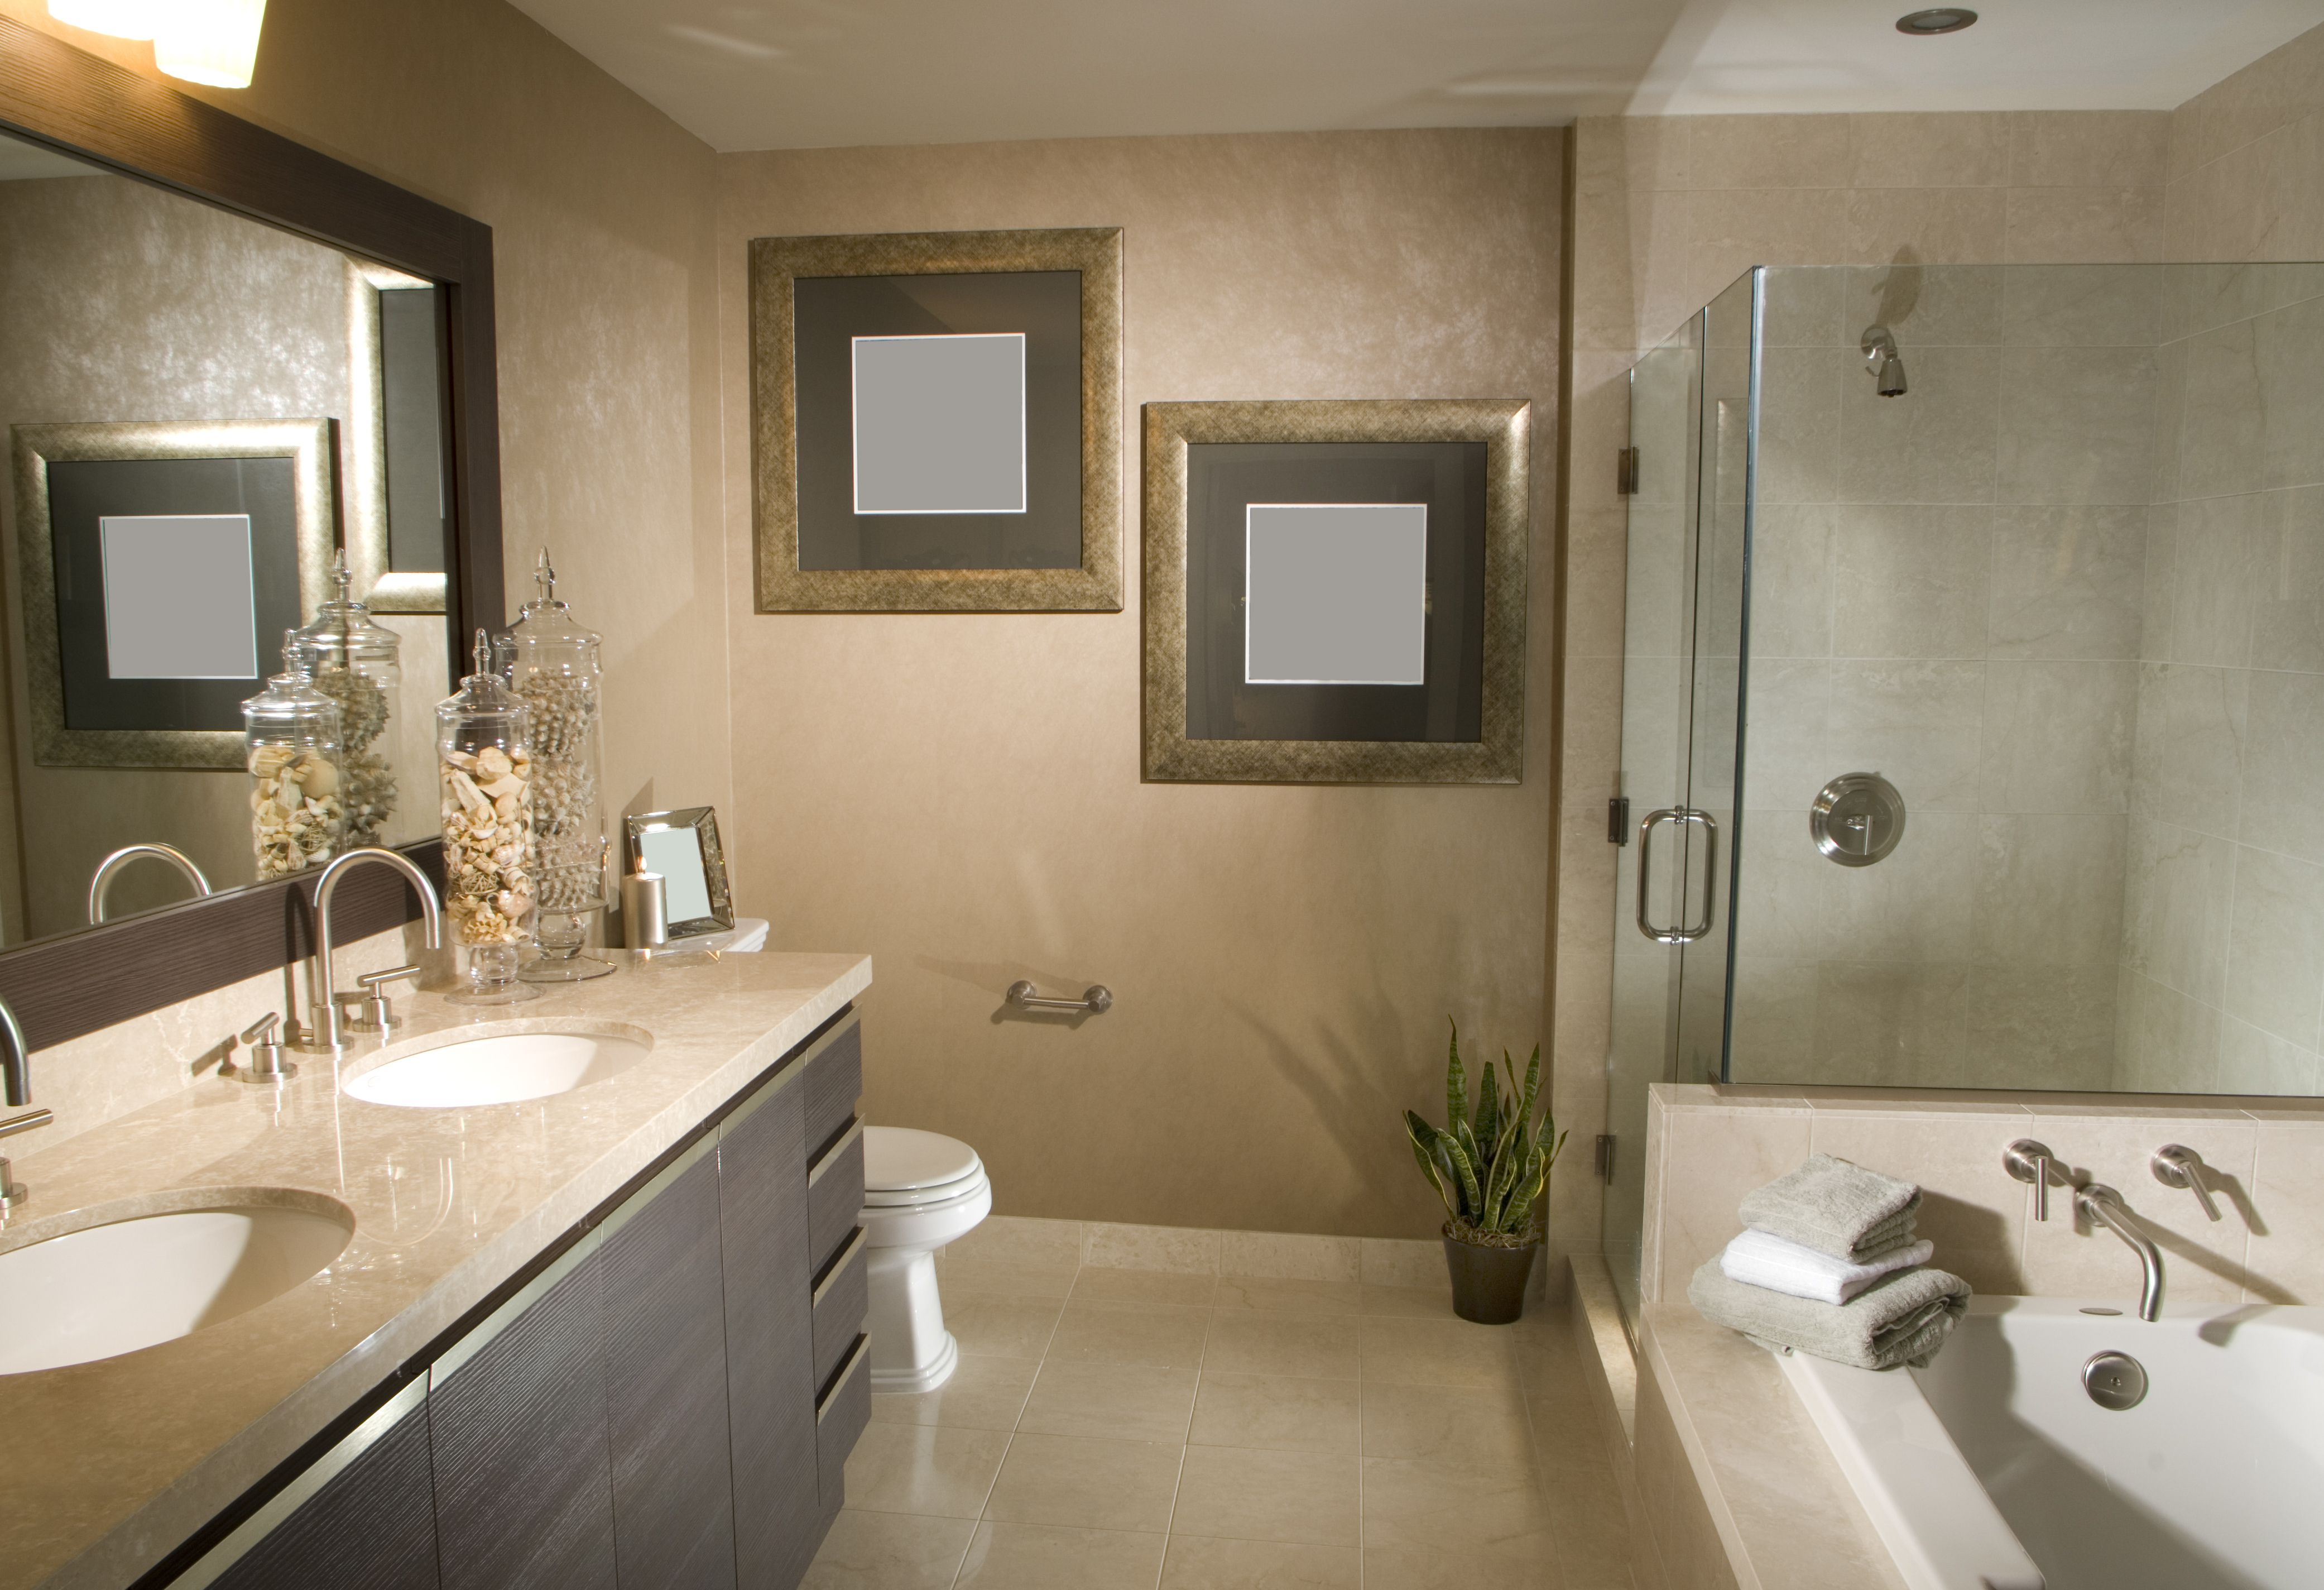 handle weilhammer bathroom plumbing indianapolis inc to how a blog flooded repair in co